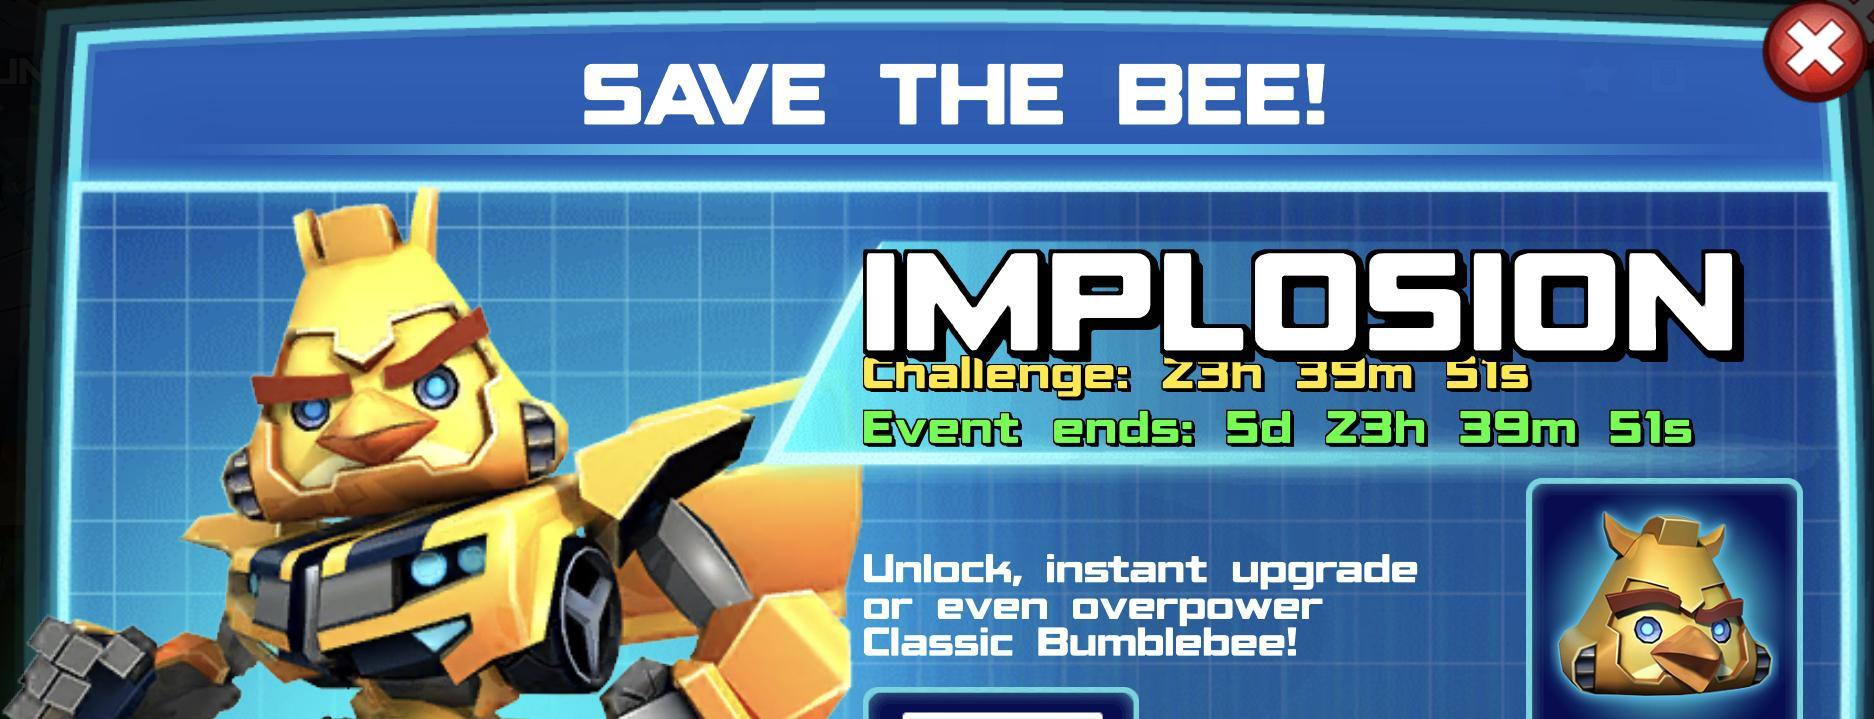 The event banner for Save The Bee!